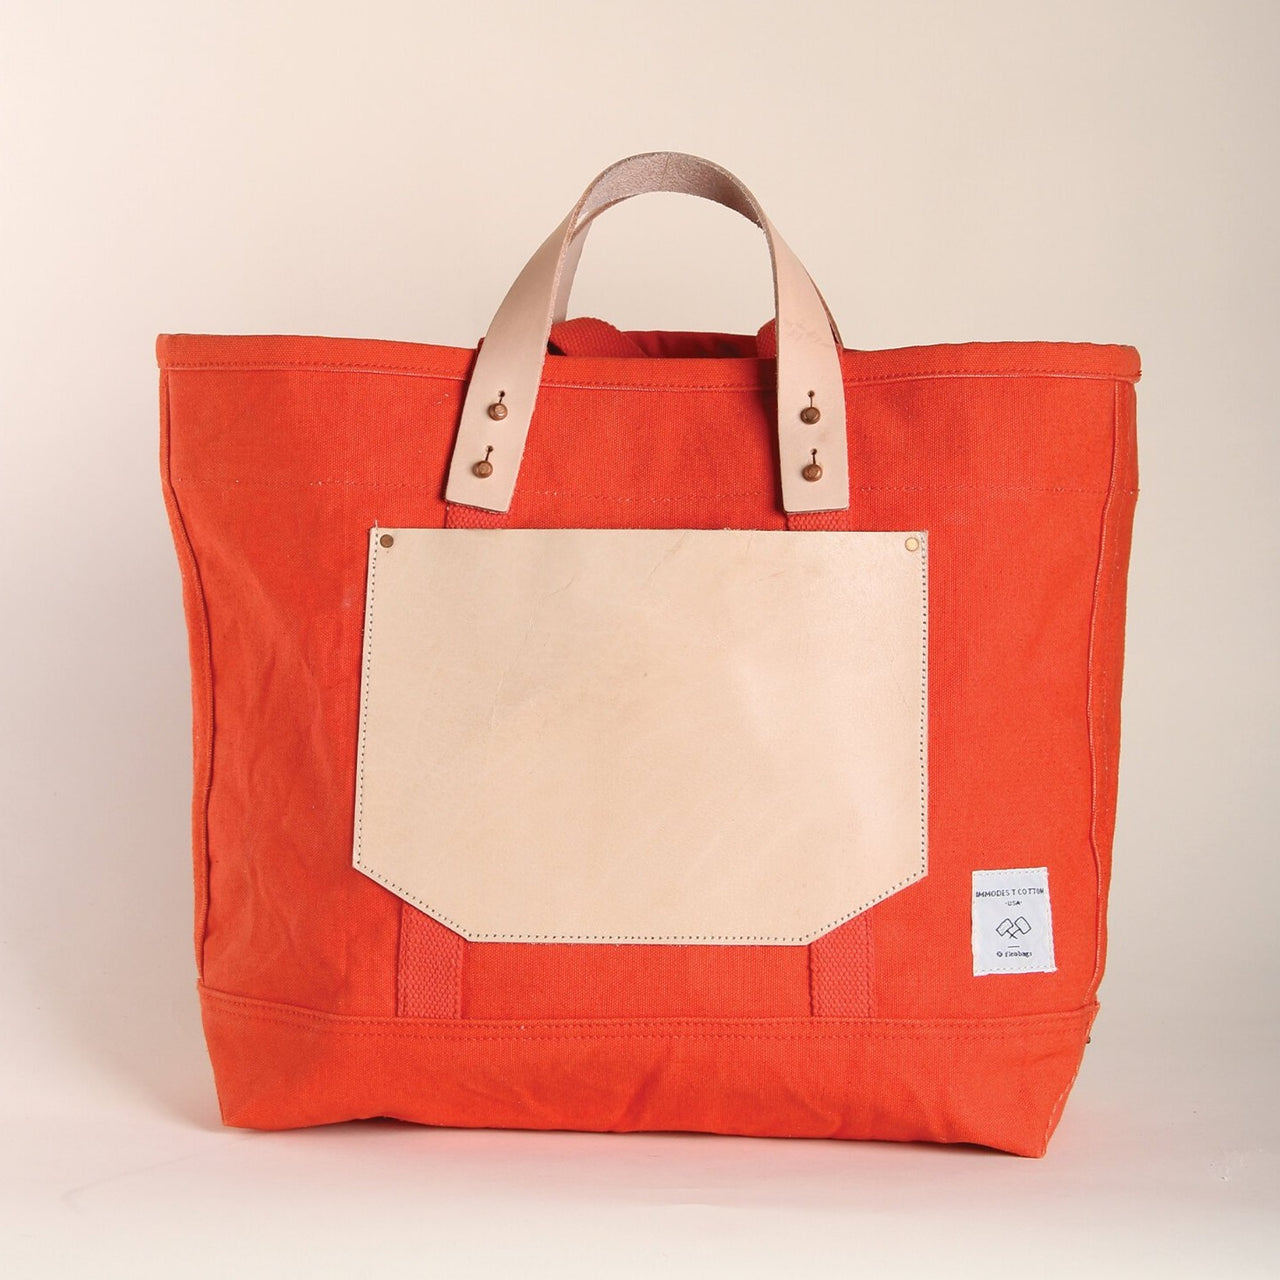 EAST-WEST POCKET TOTE PERSIMMON